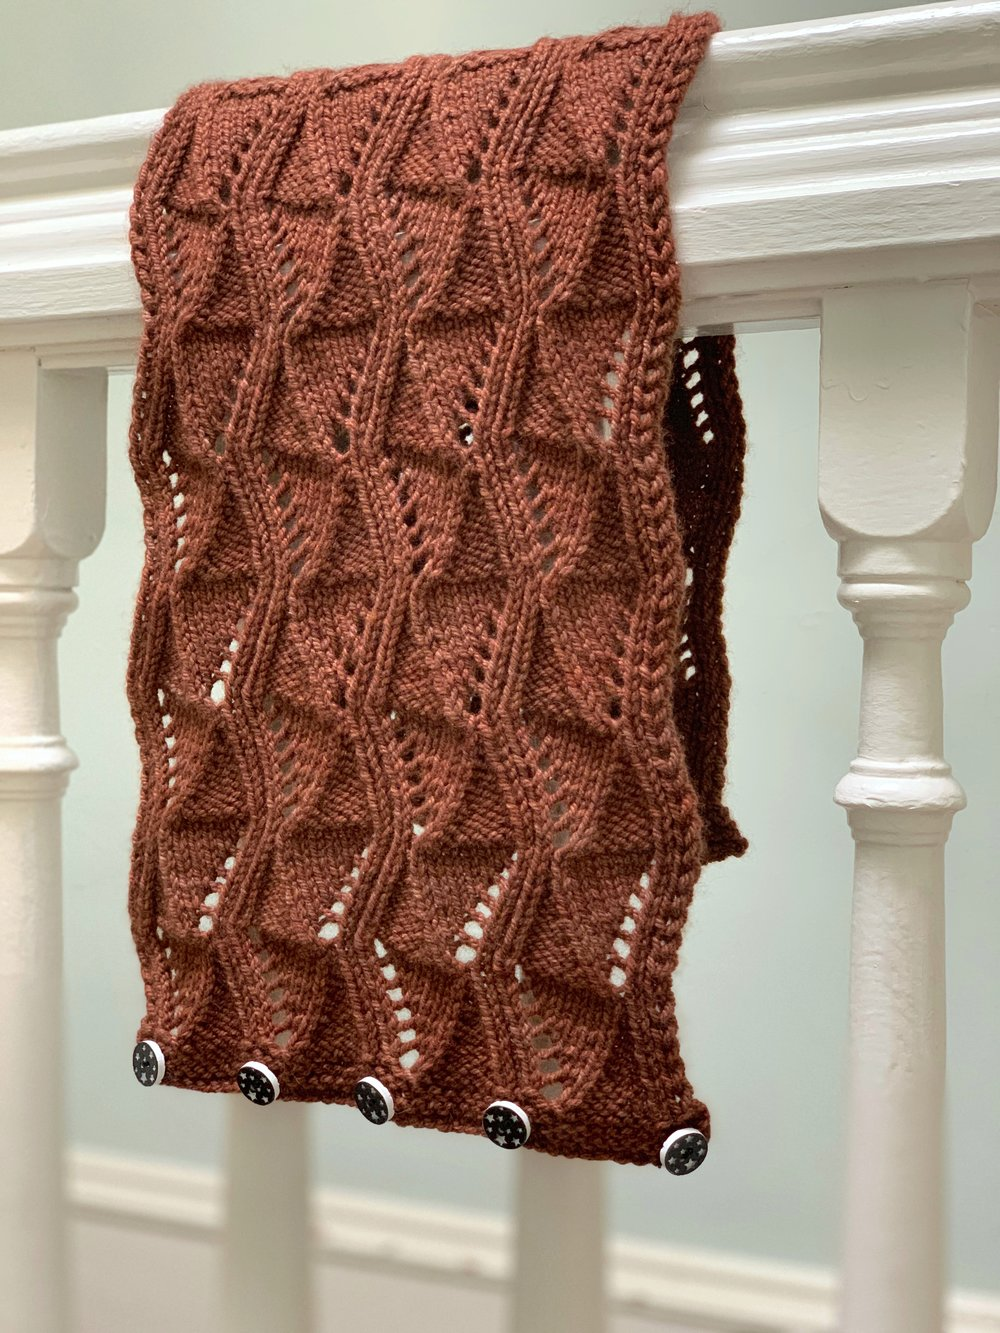 Acatalepsy knit with 2 skeins of Katara in Rust